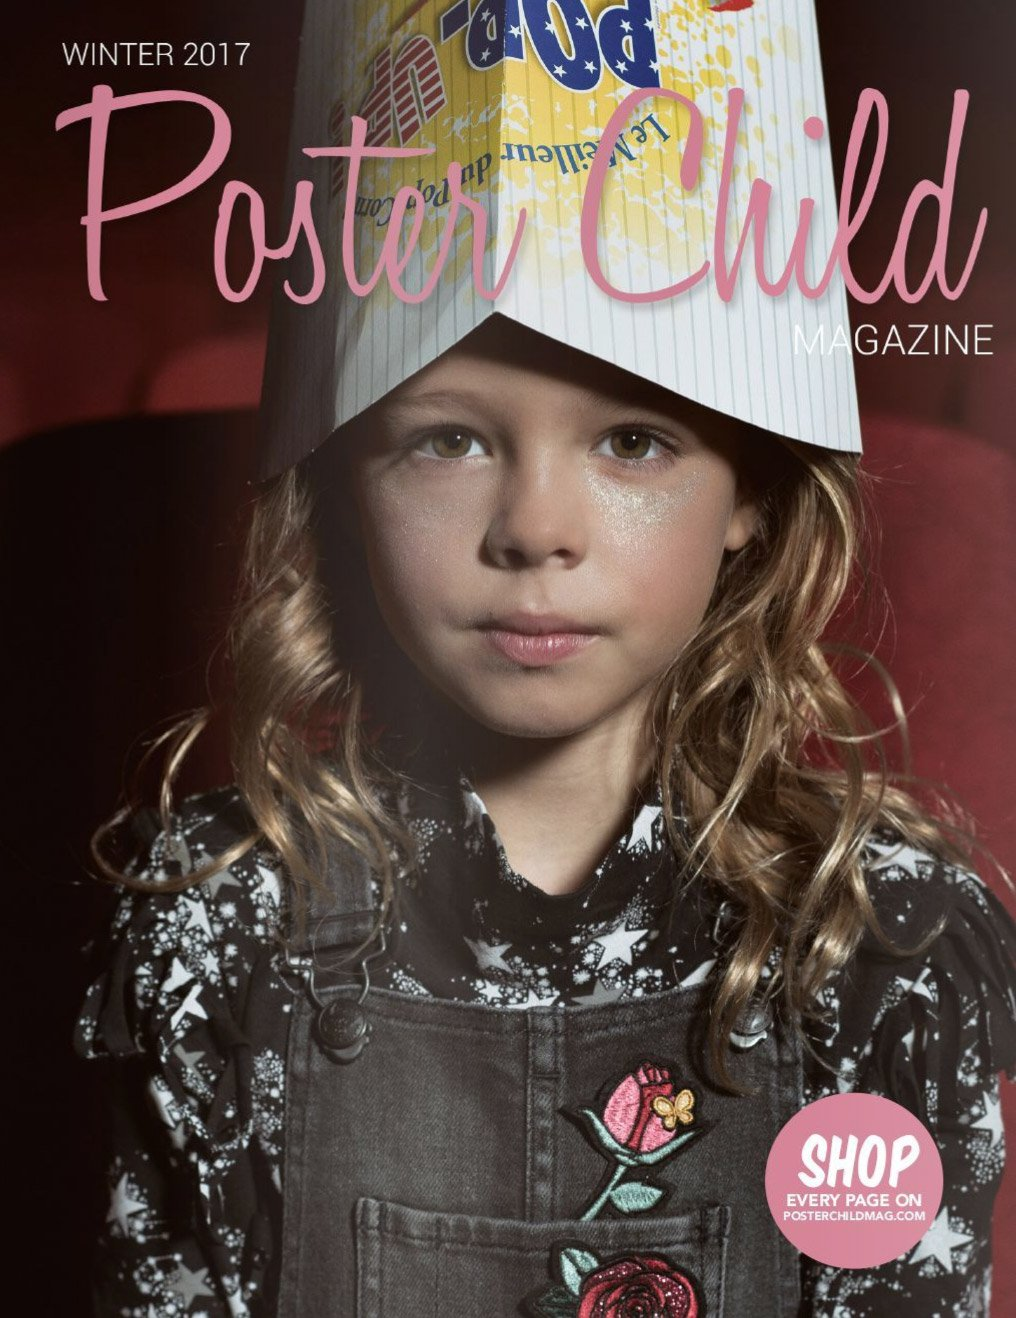 Poster Child Magazine - Winter 2017